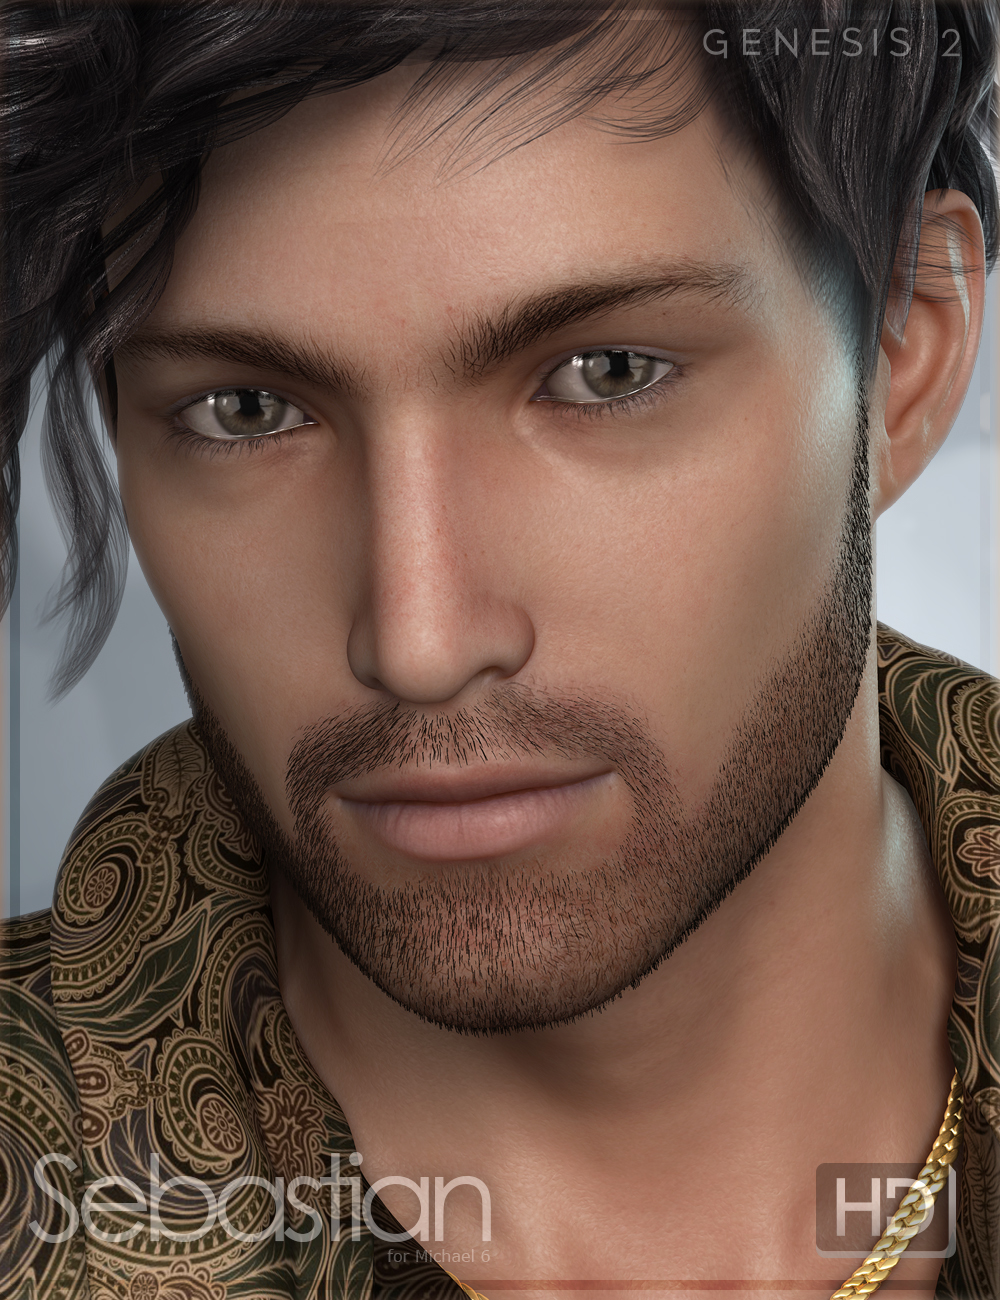 FW Sebastian HD by: Fred Winkler Art, 3D Models by Daz 3D